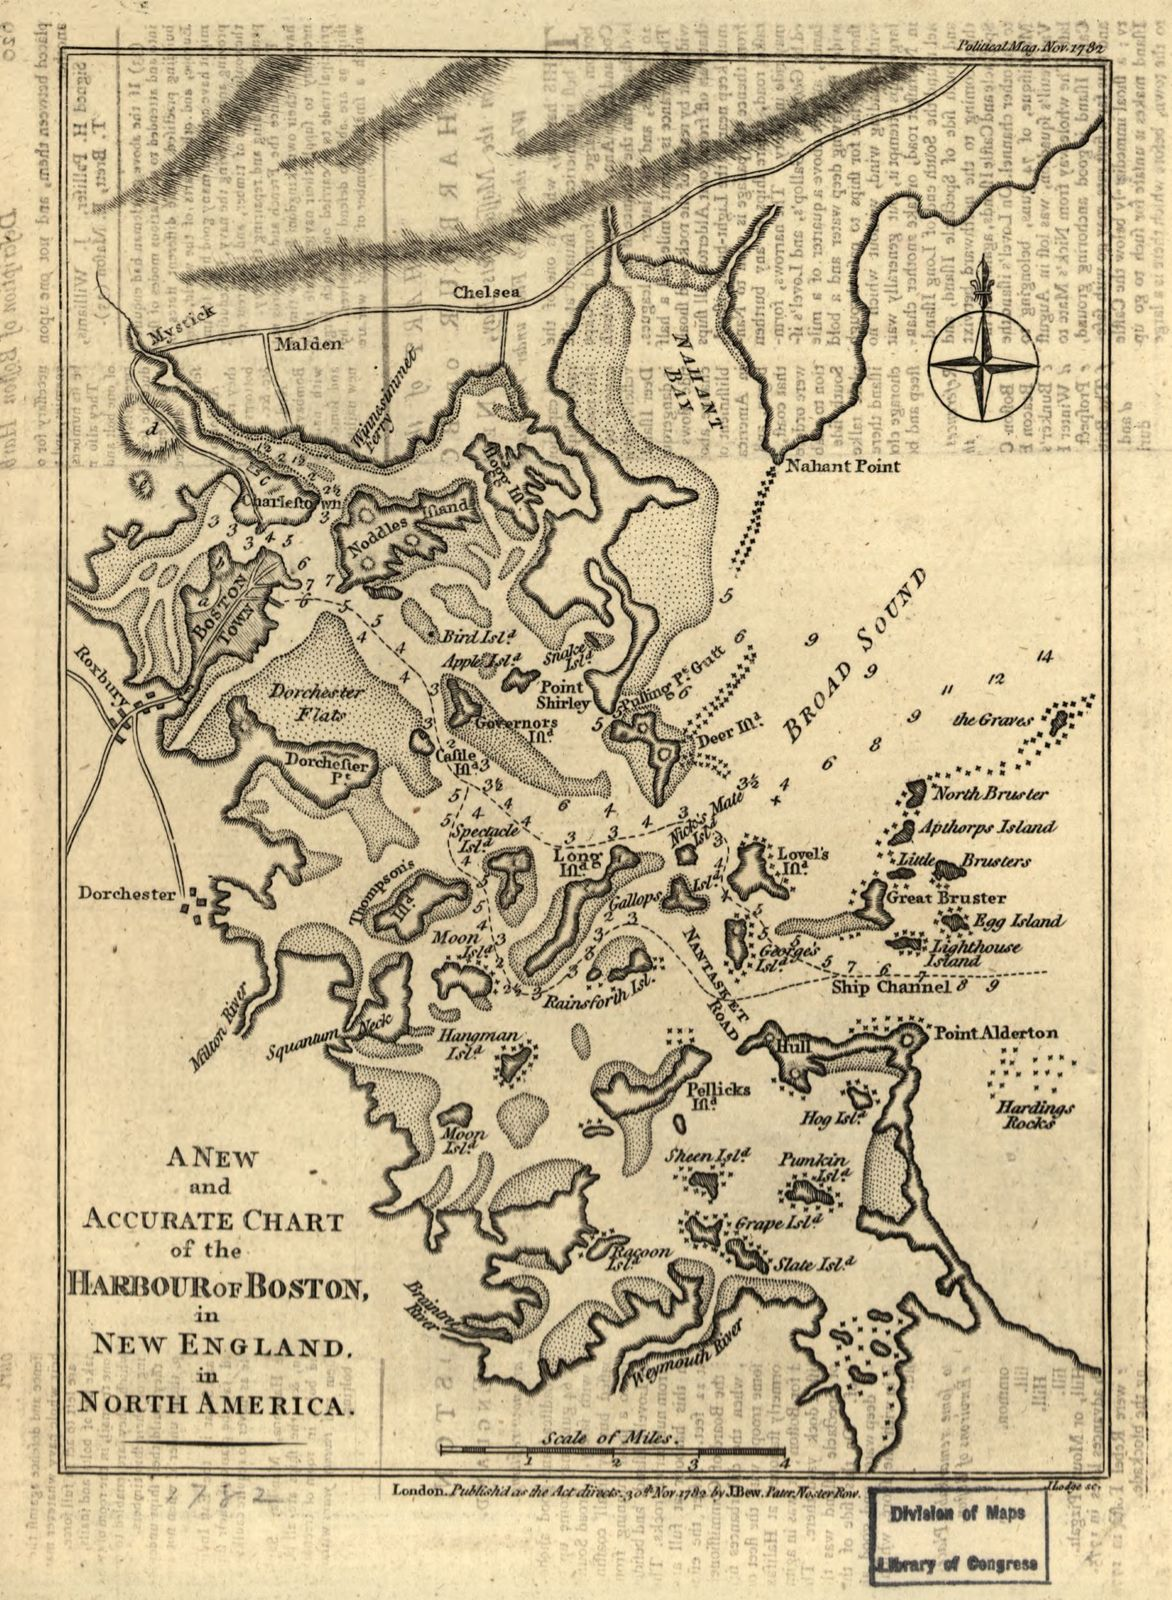 A new and accurate chart of the harbour of Boston in New England in North America /